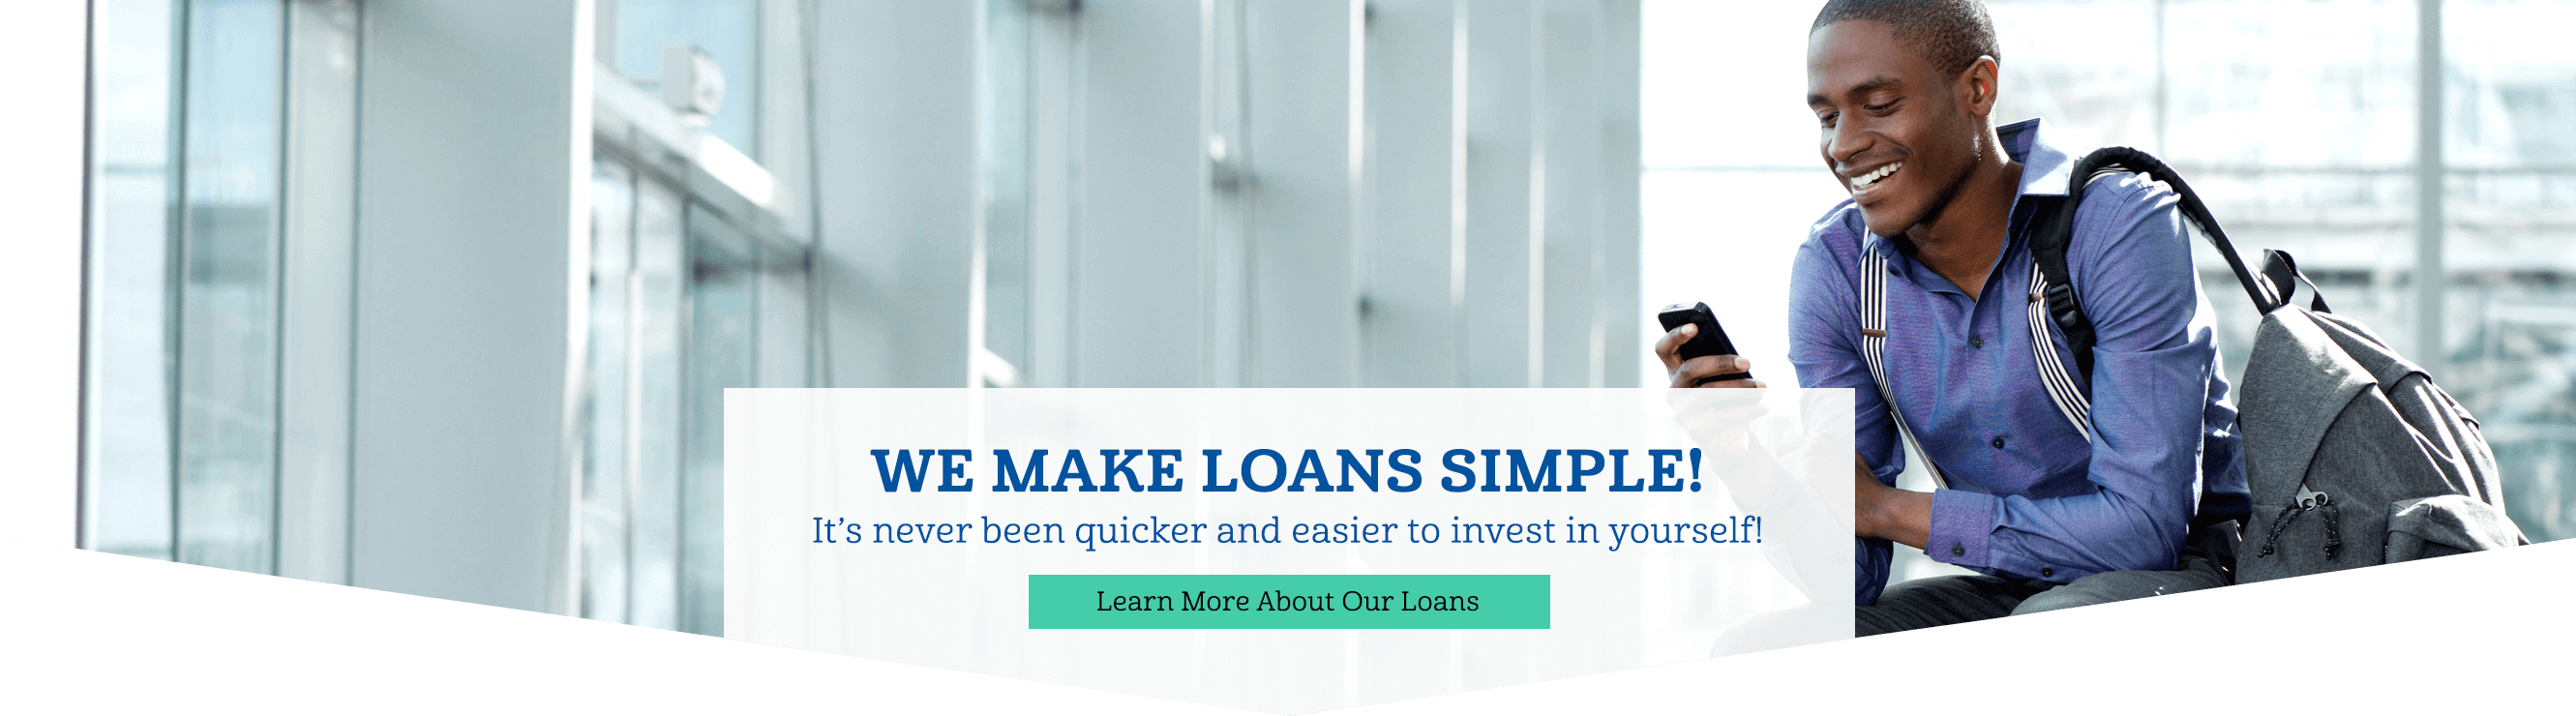 We make loans simple! It's never been quicker and easier to invest in yourself! Learn more about our loans.